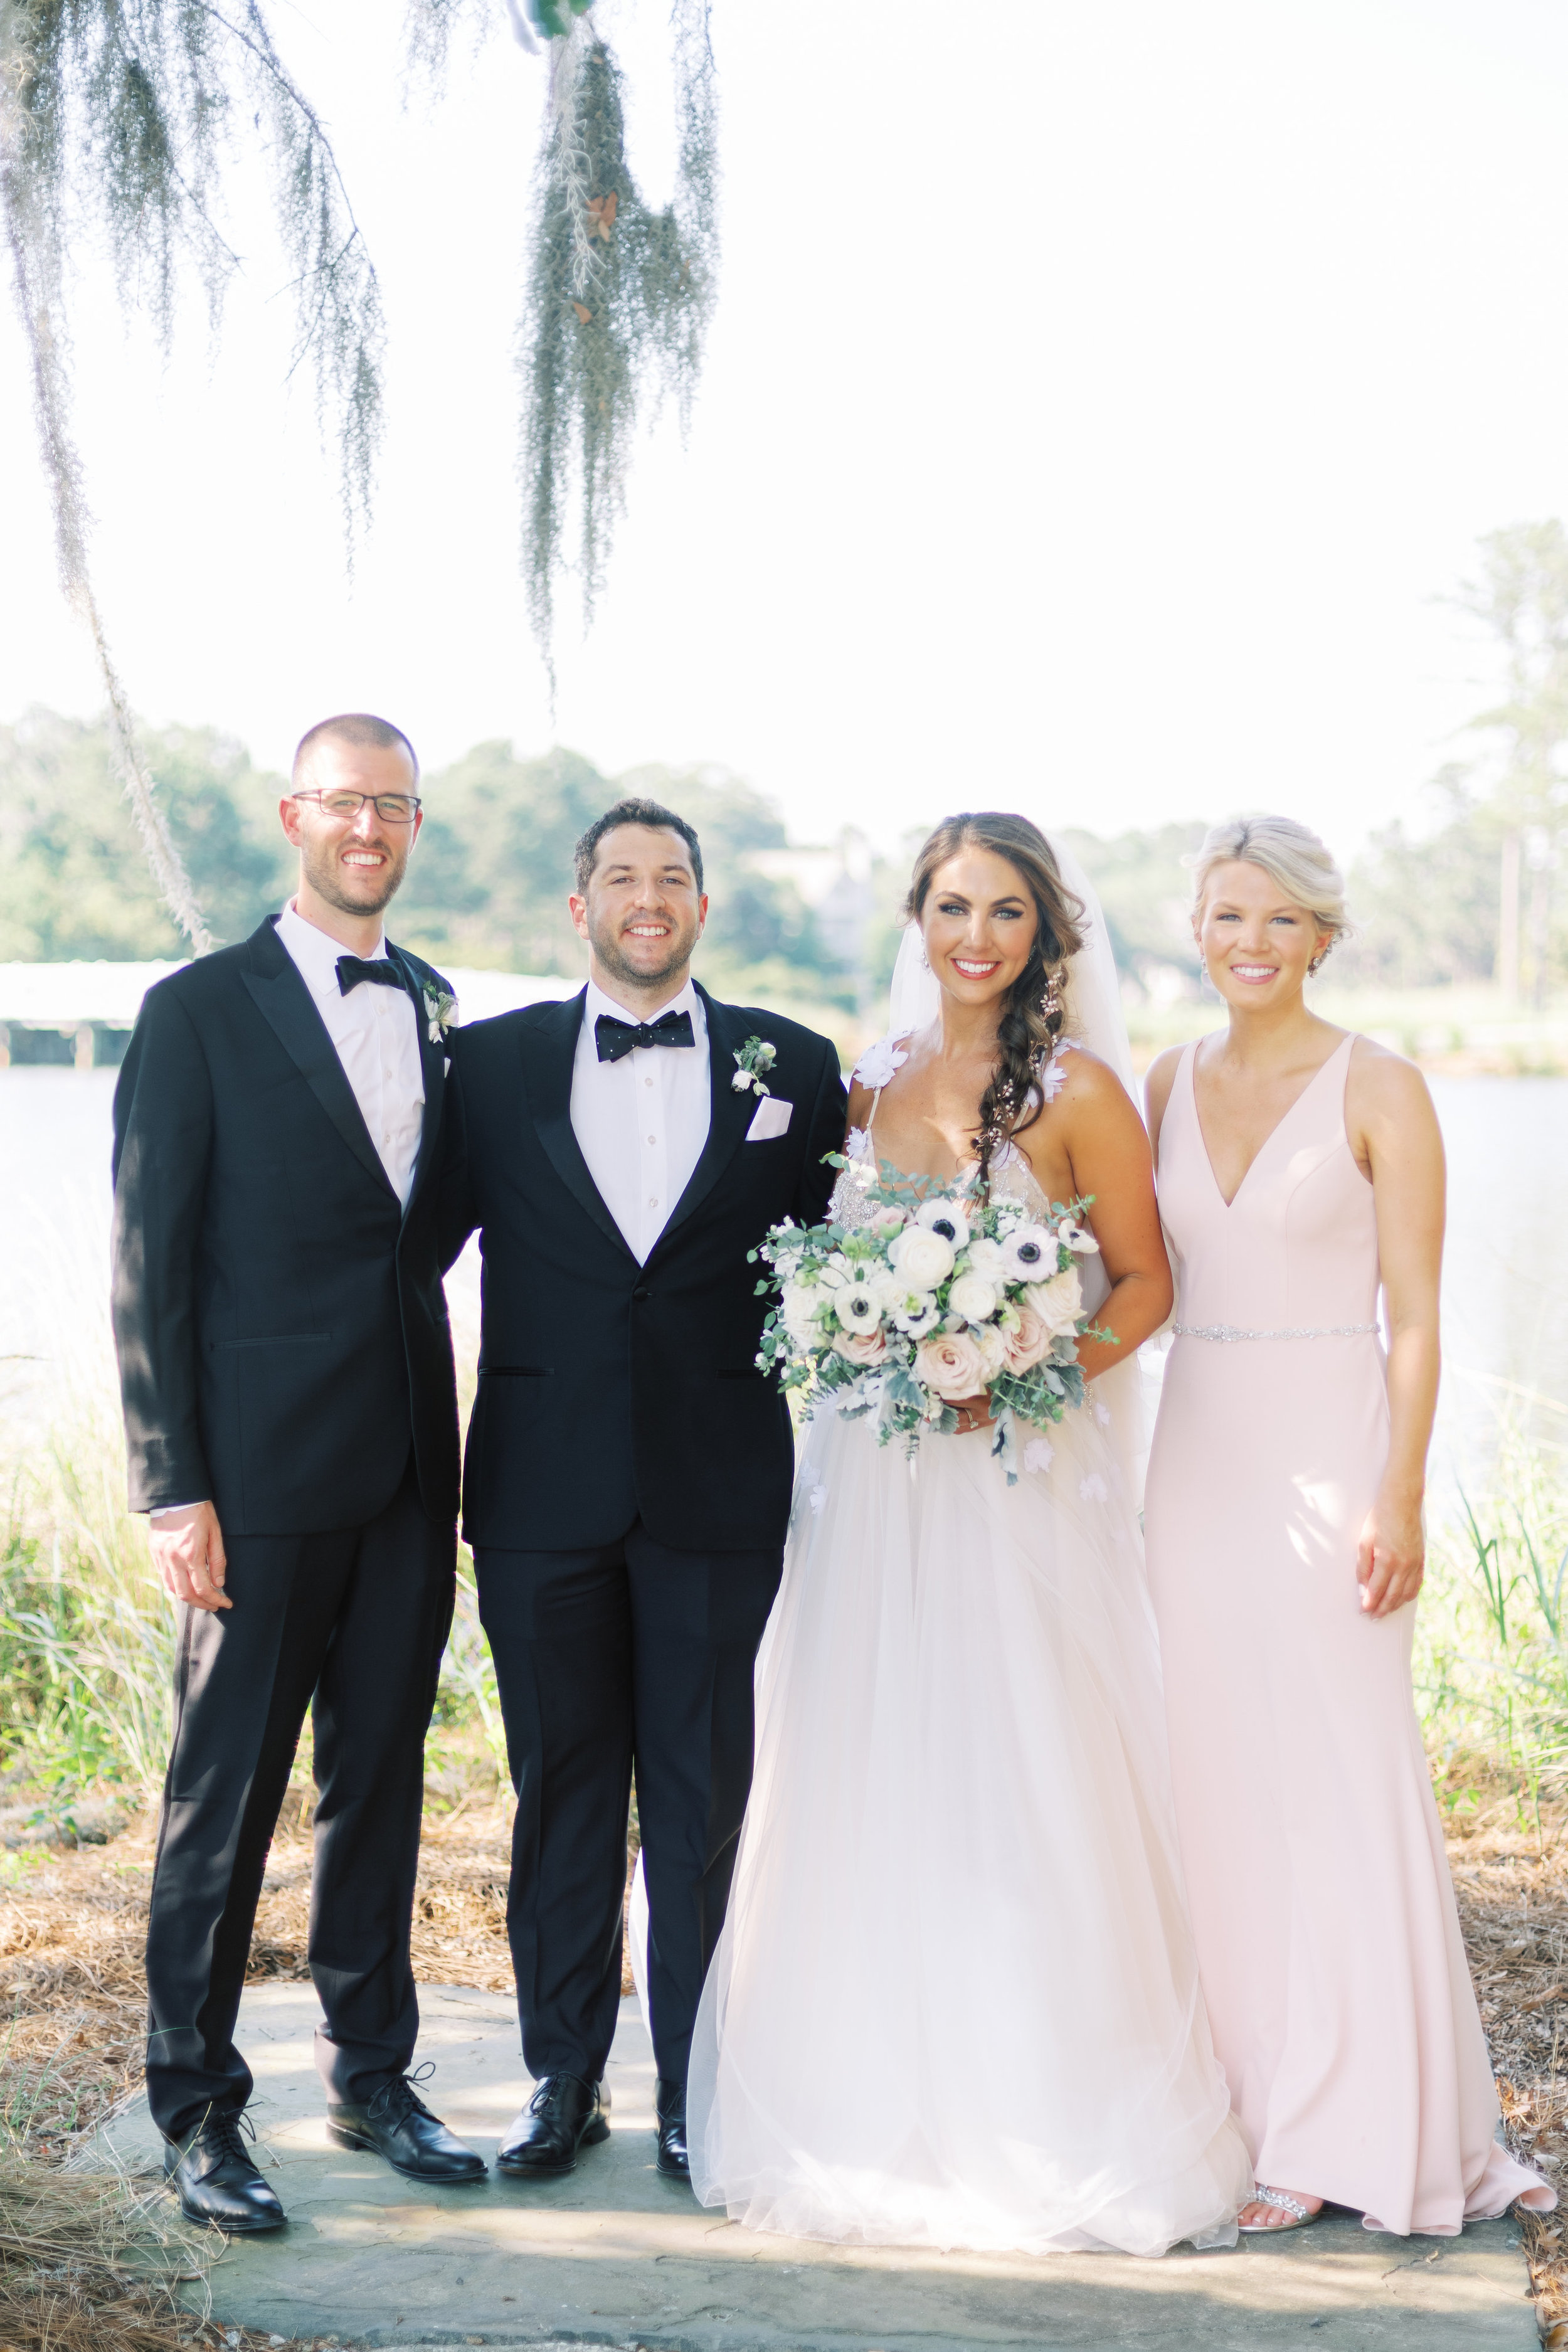 Kirstin & Nick's Oldfield Club wedding  ll  A Lowcountry Wedding Magazine